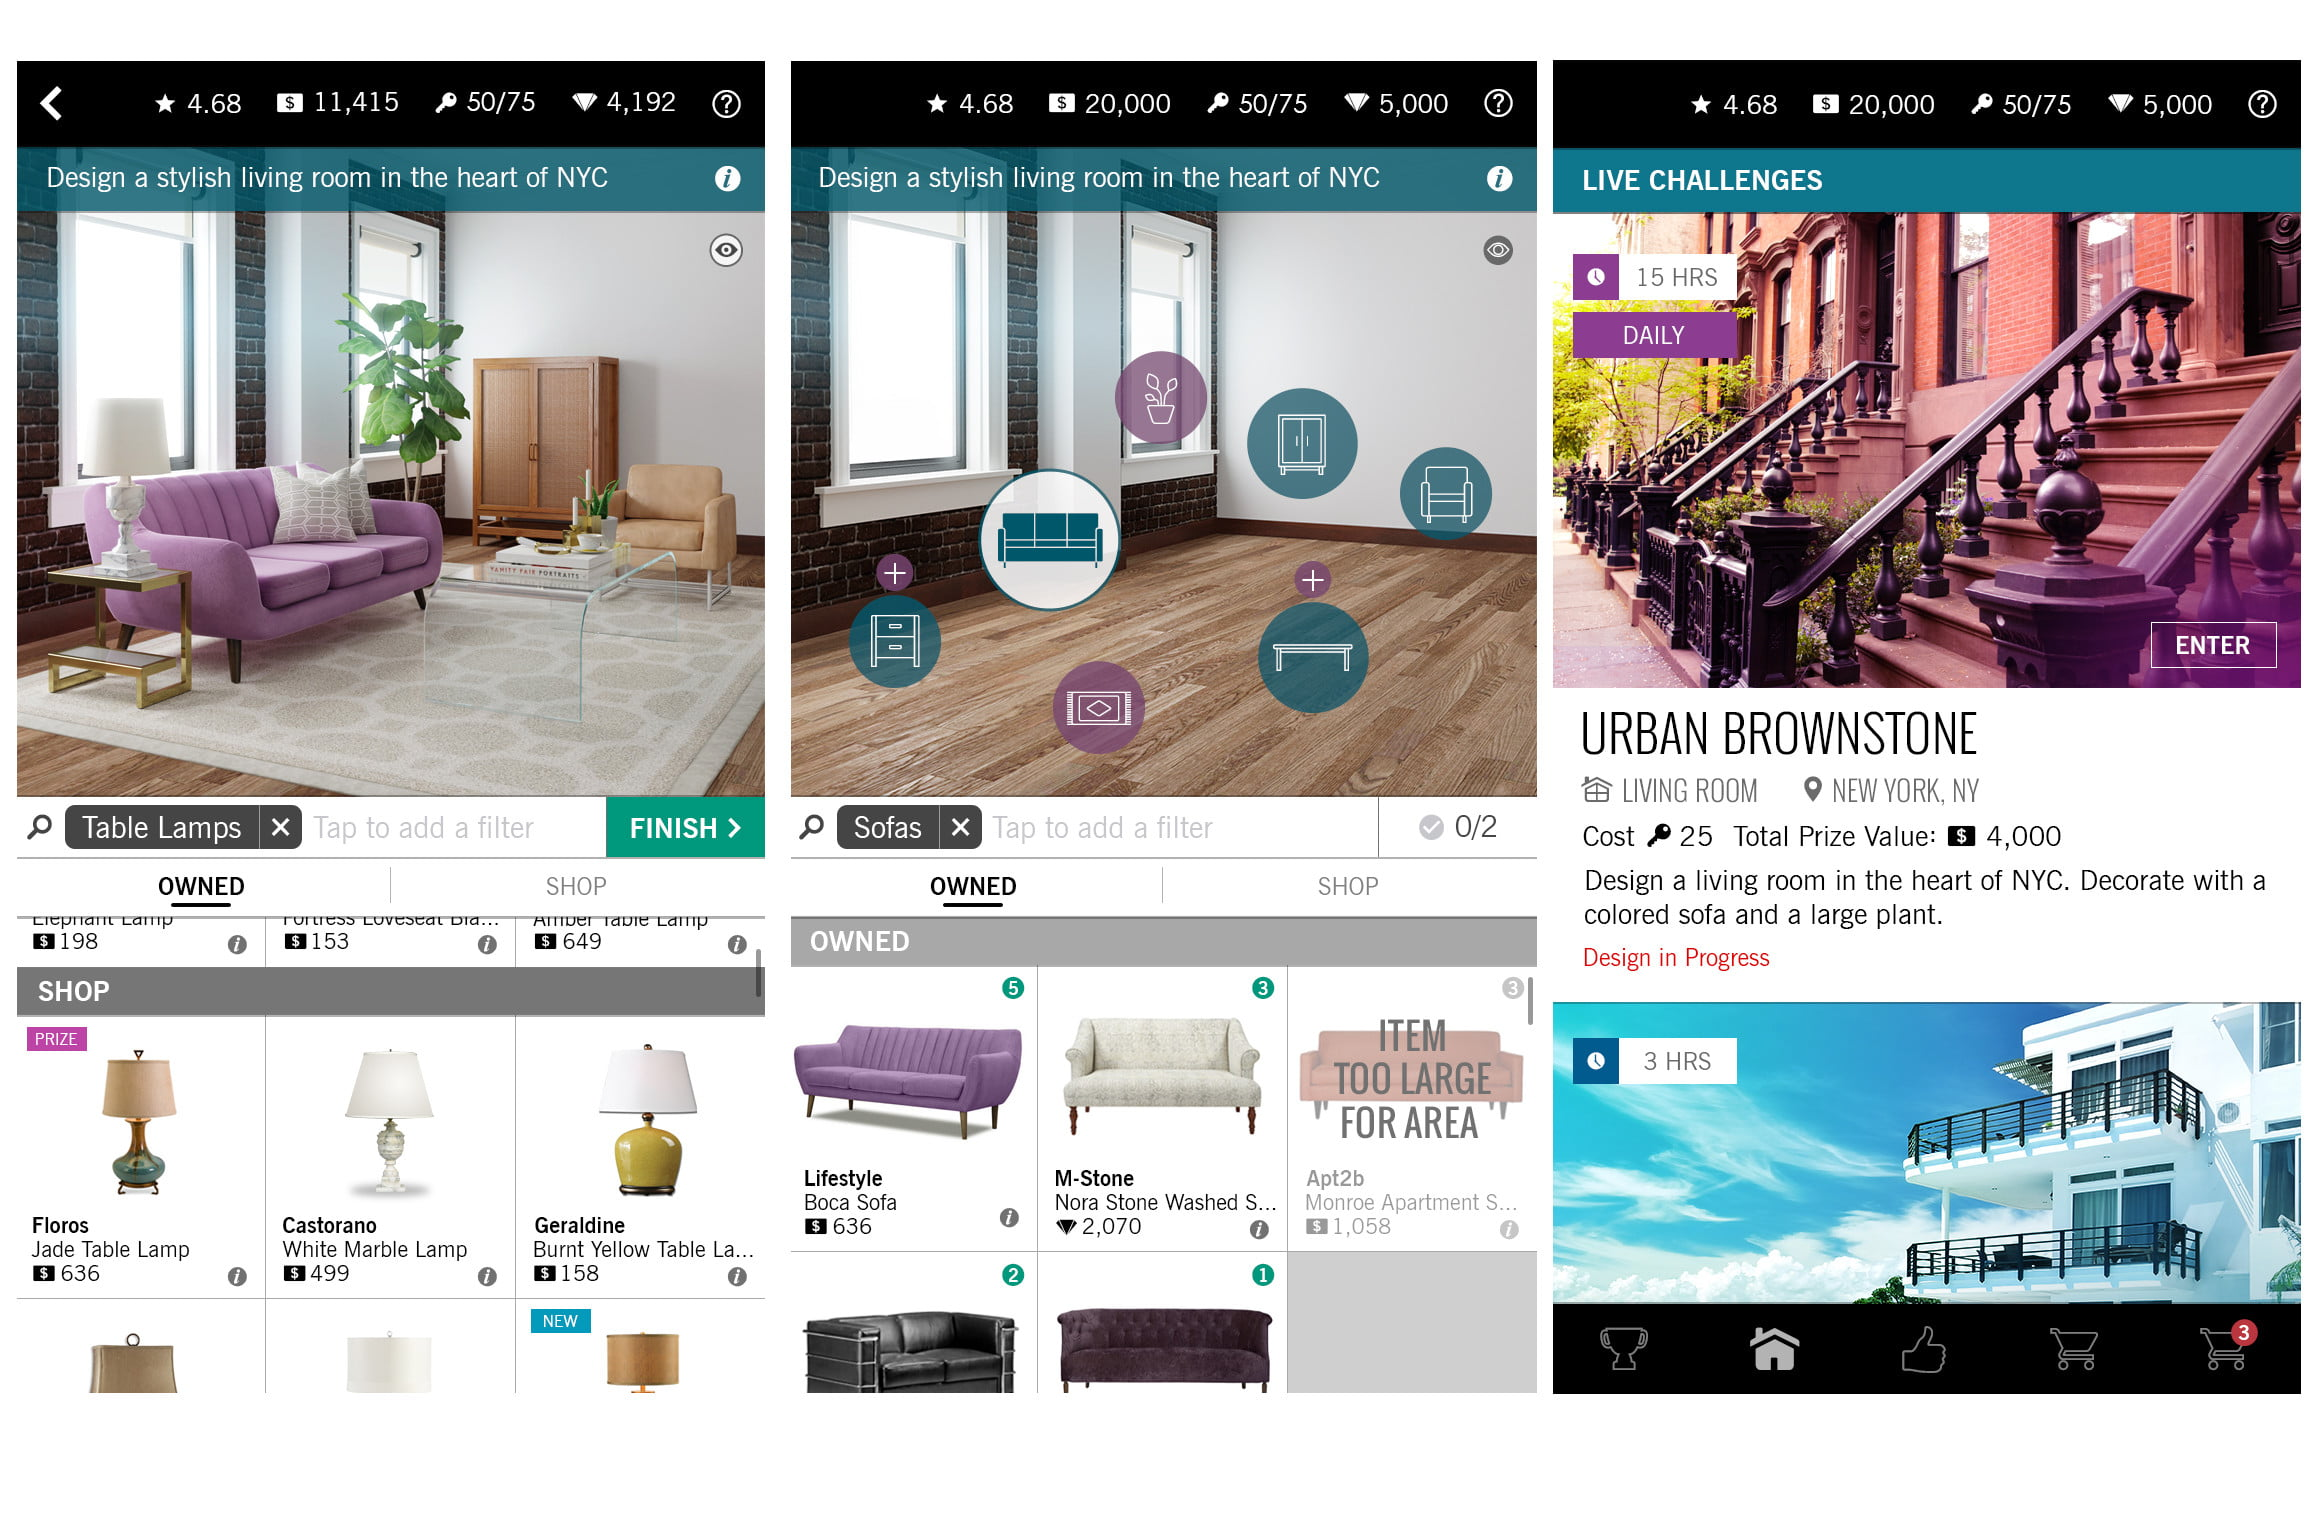 Wonderful U0027Design Homeu0027 Is A Game For Interior Designer Wannabes | Digital Trends Great Pictures